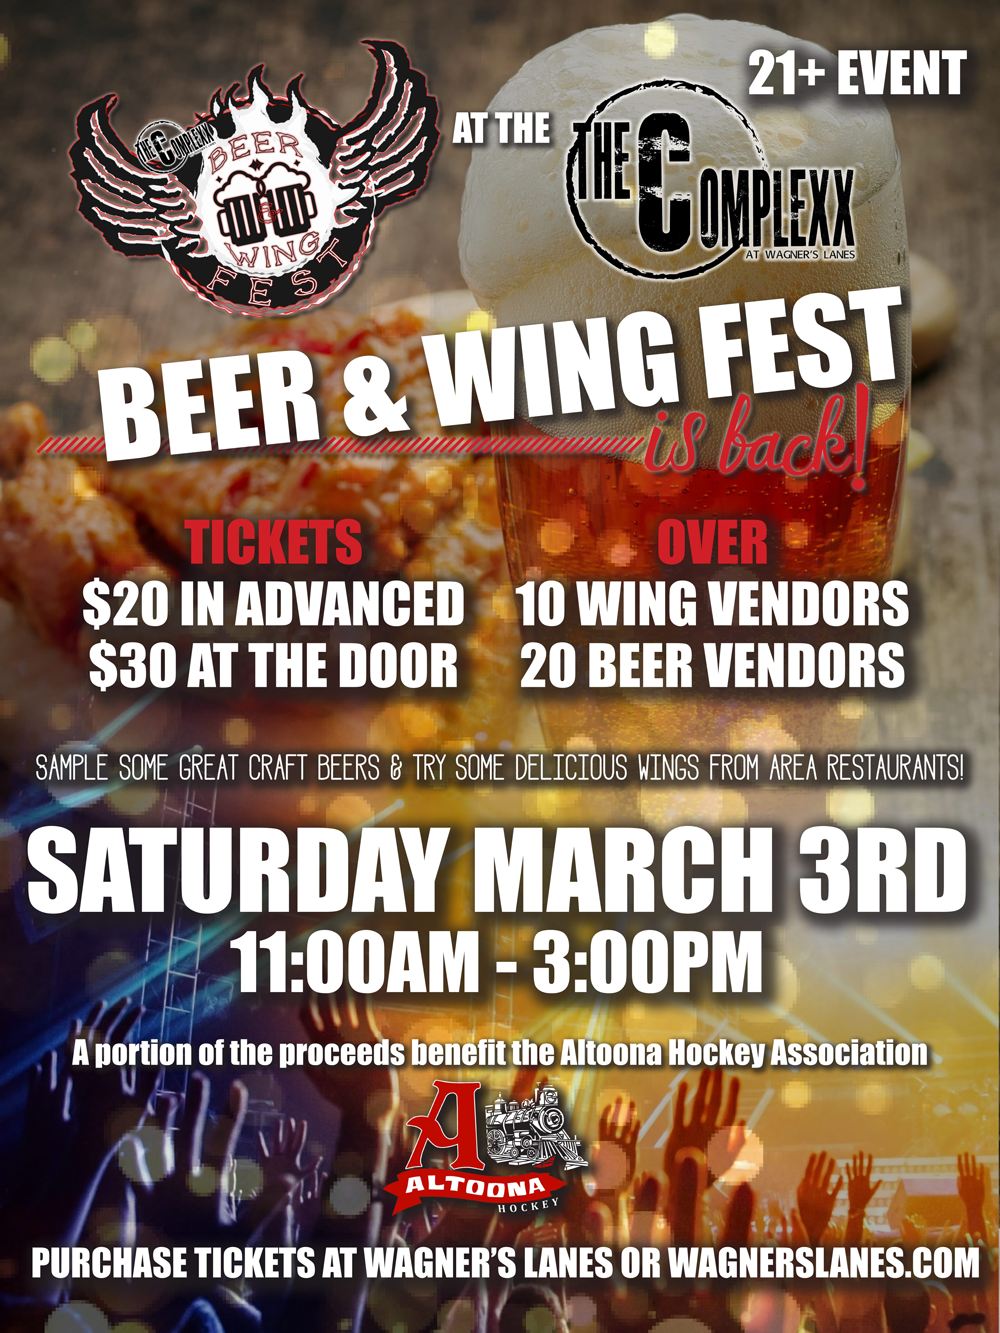 Beer and Wing Fest